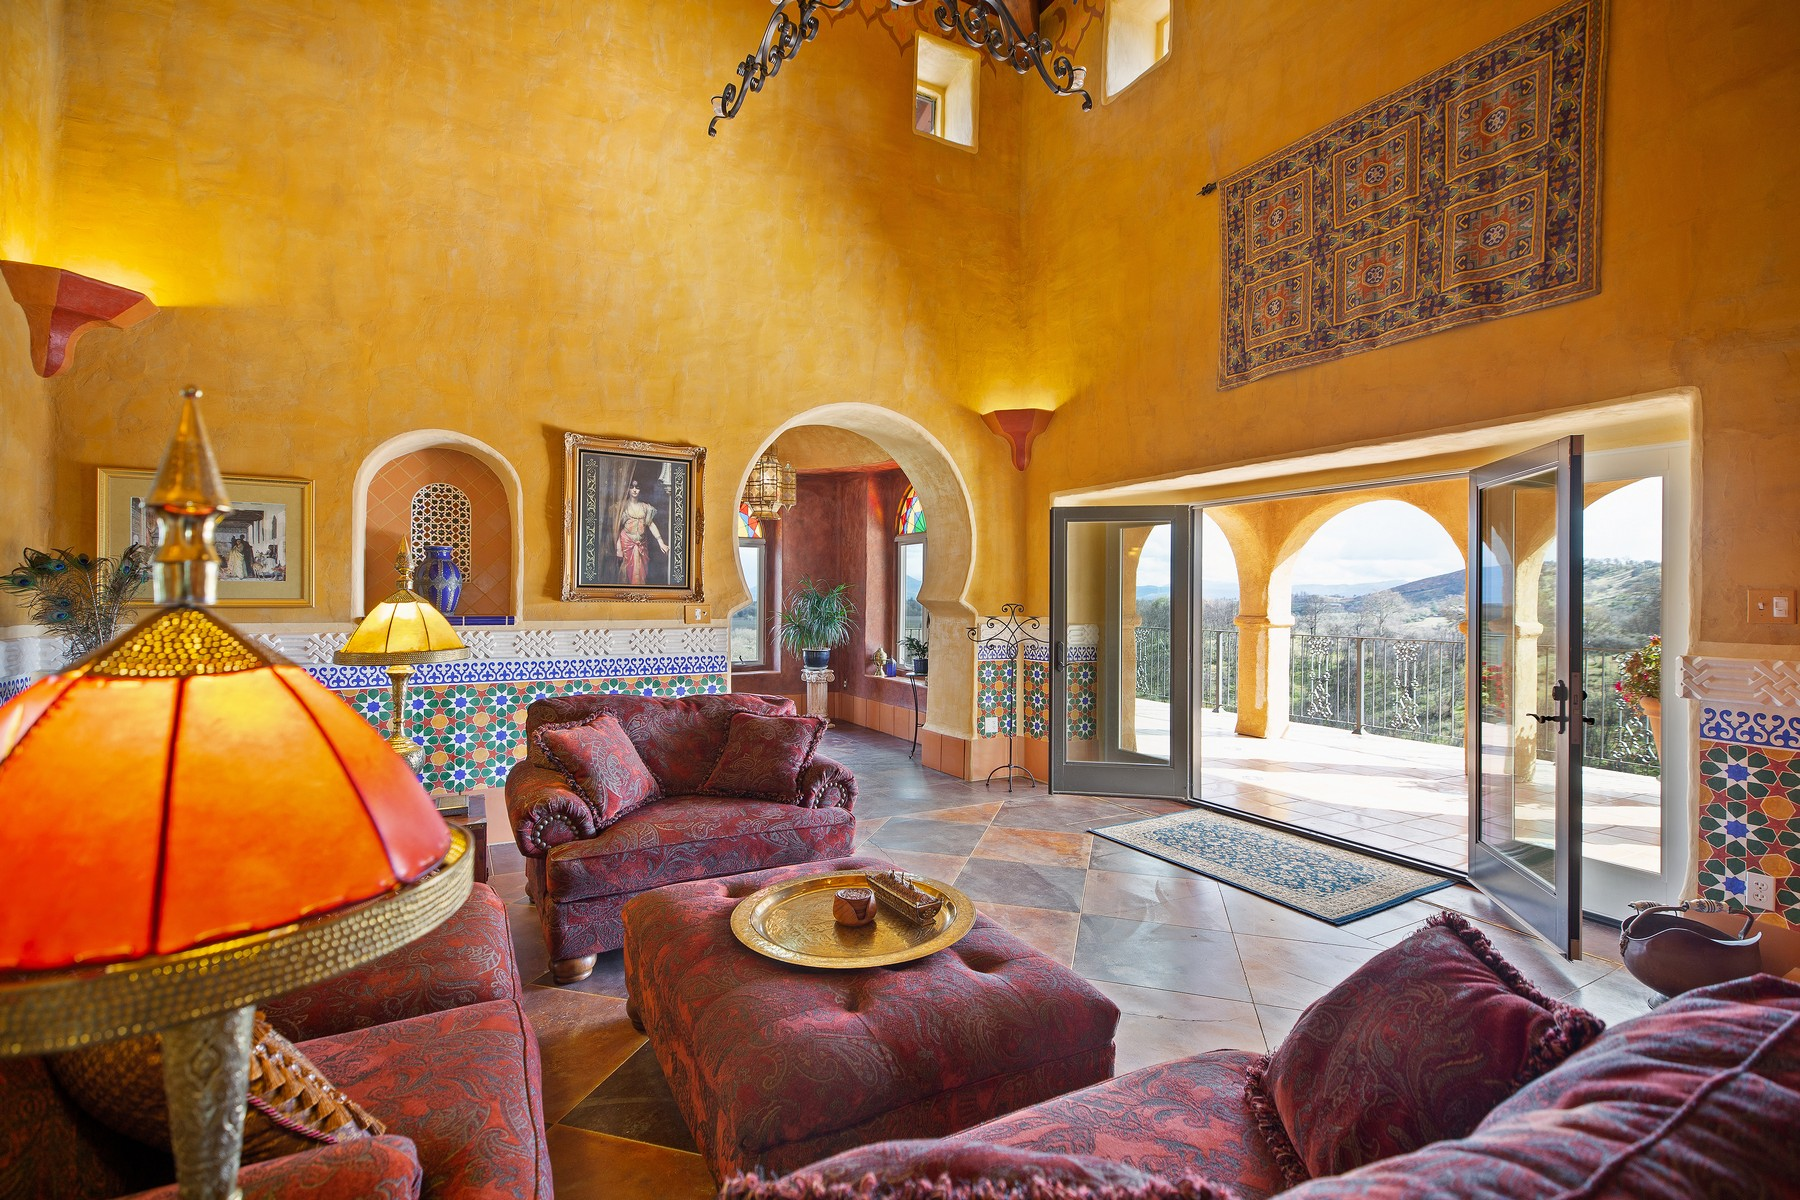 Single Family Homes for Active at Moroccan Oasis 3075 Hendricks Road Lakeport, California 95453 United States